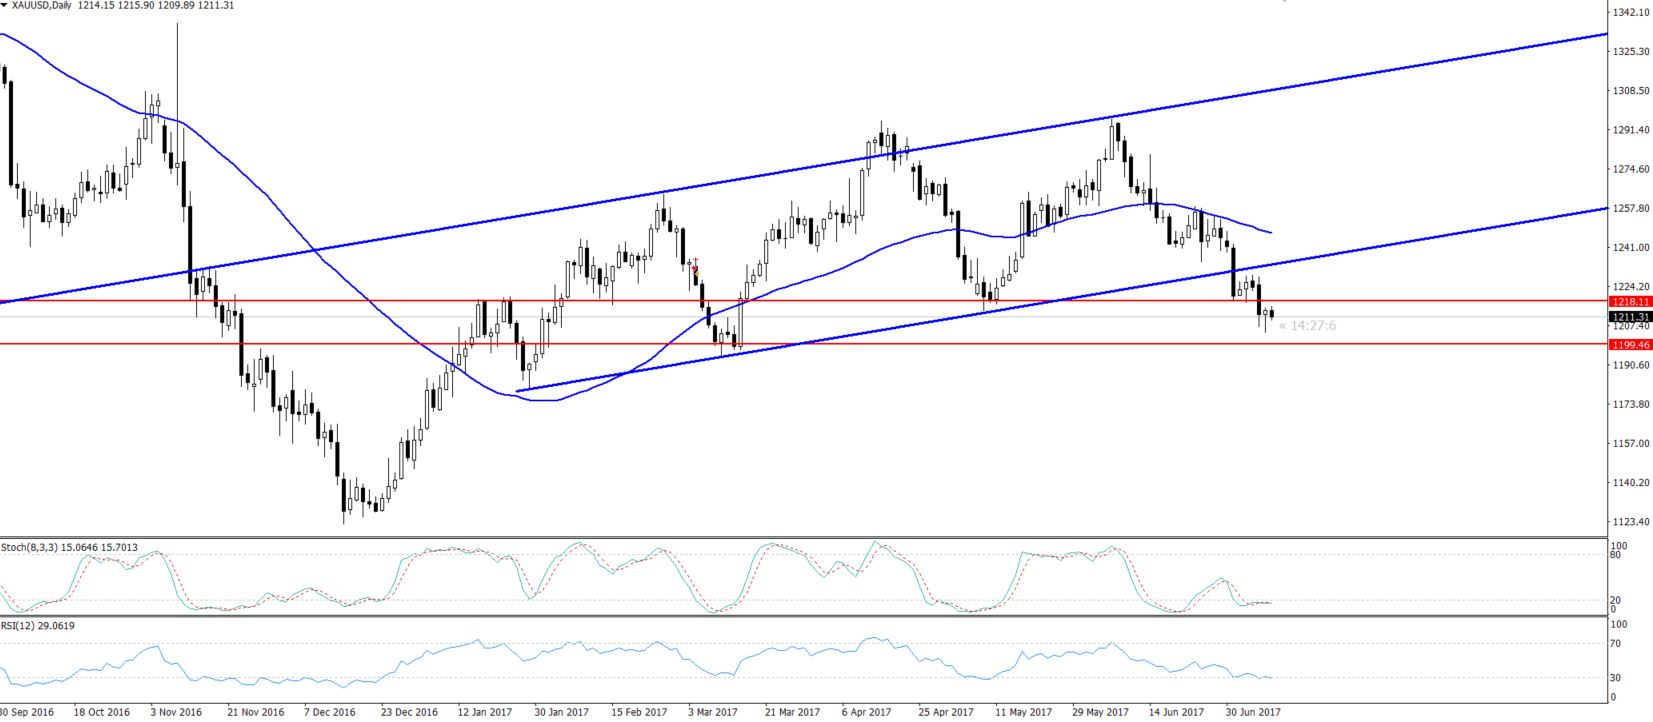 Gold - Daily Chart